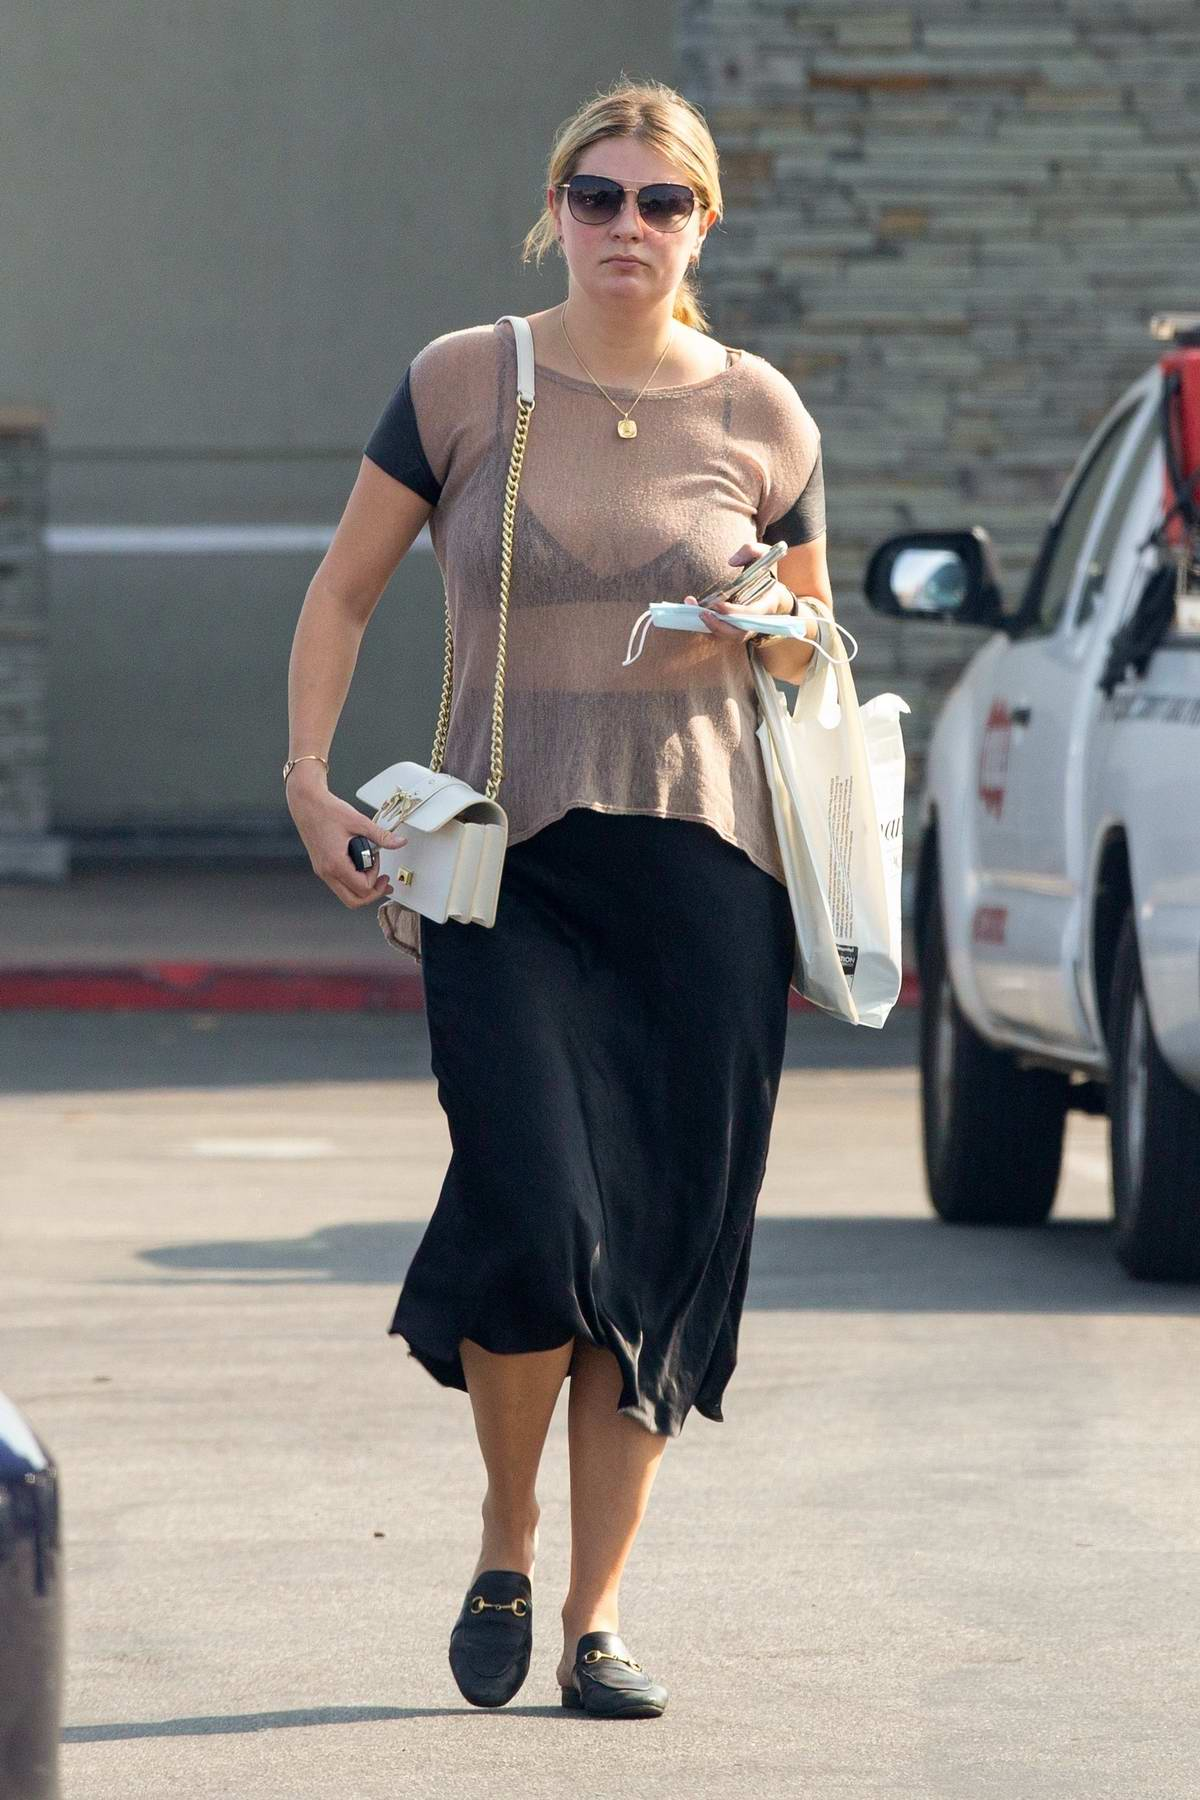 Mischa Barton steps out wearing a sheer top for some shopping in Los Angeles